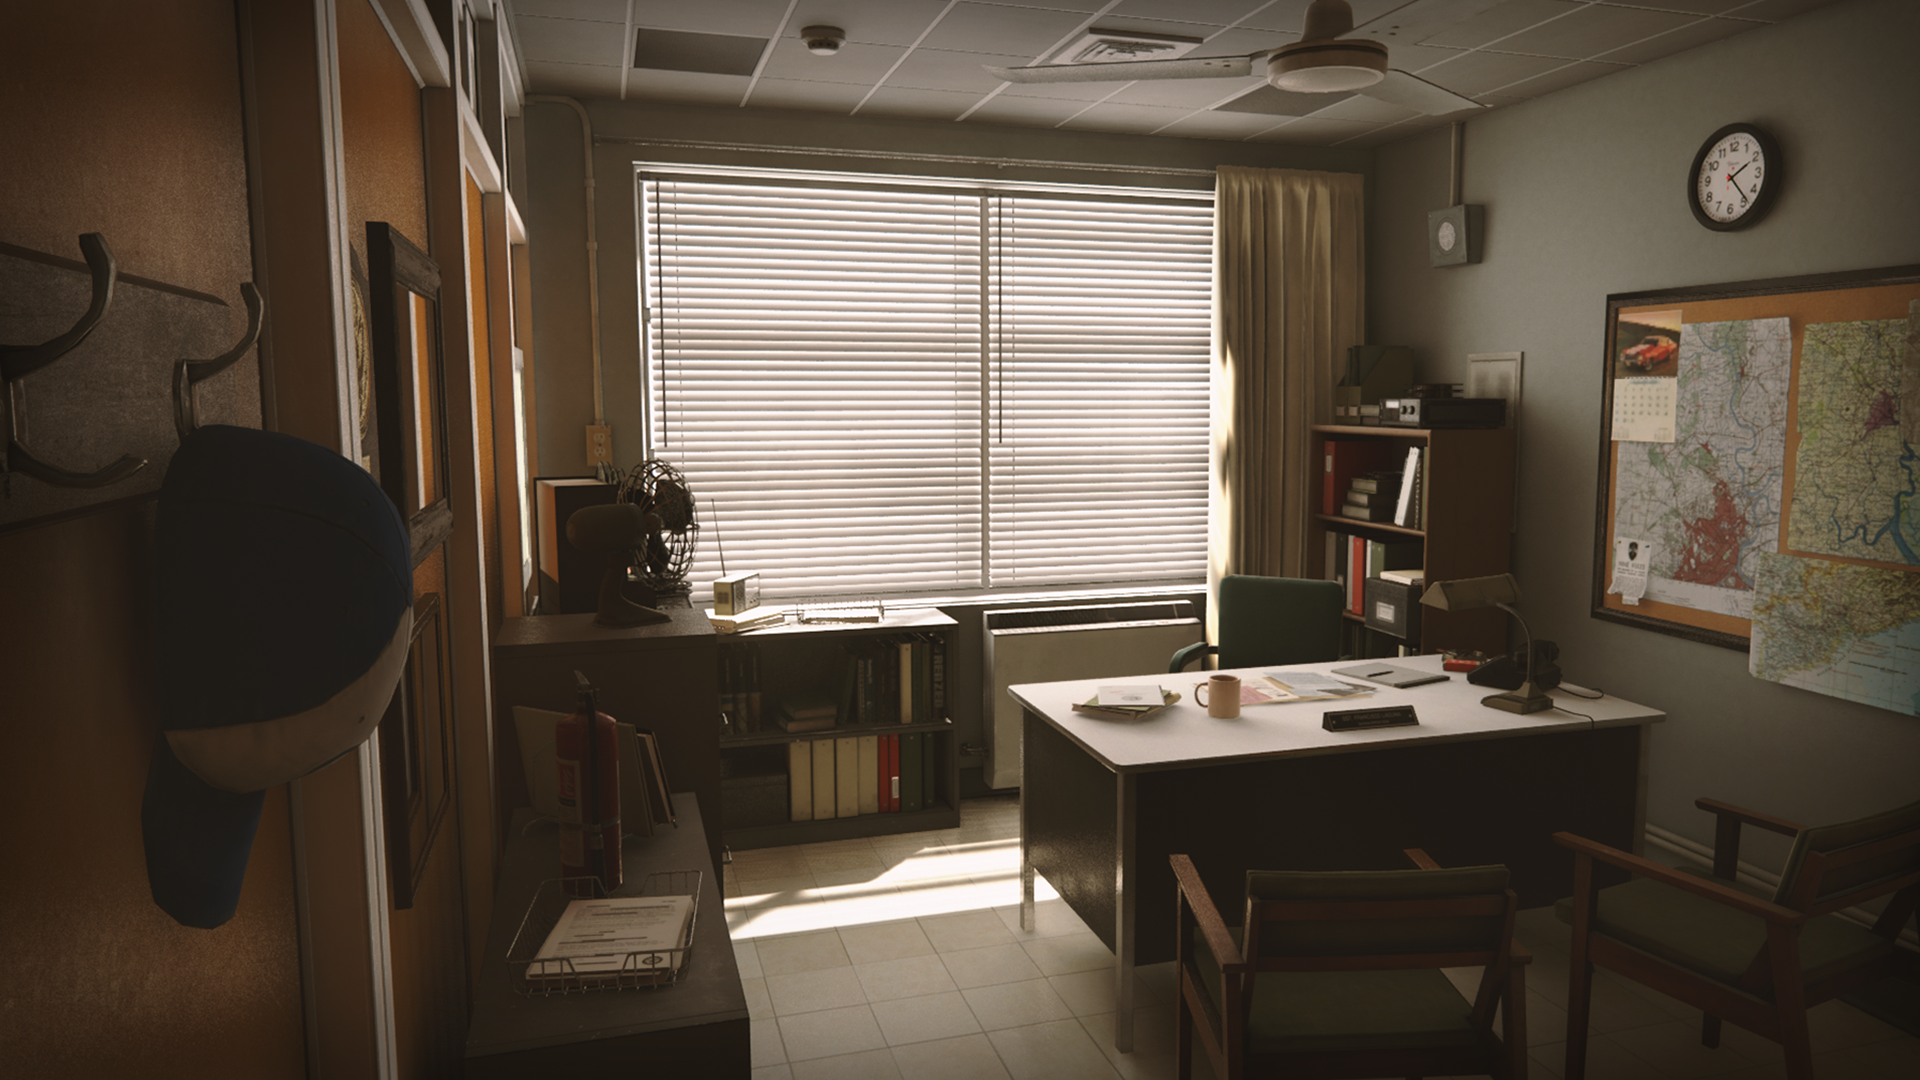 Clinton Crumpler の Retro Office Environment